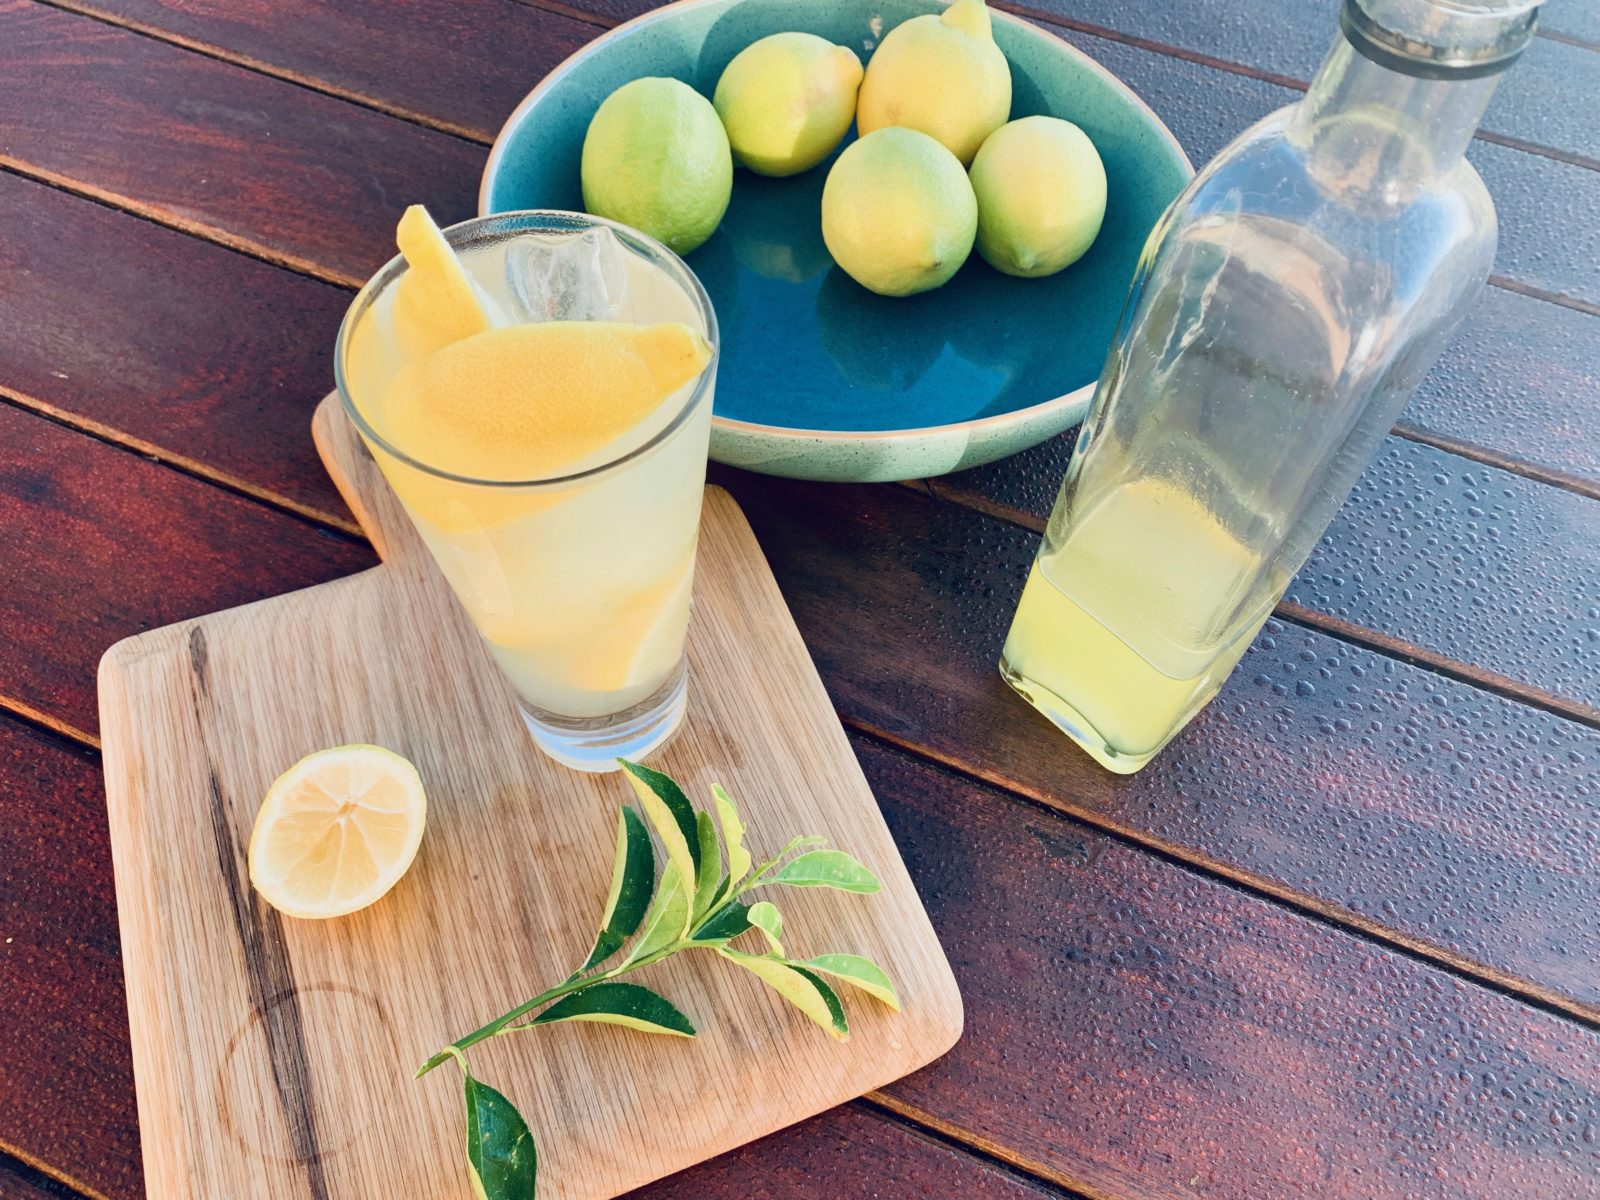 Grate stuff: The transformative power of lemons